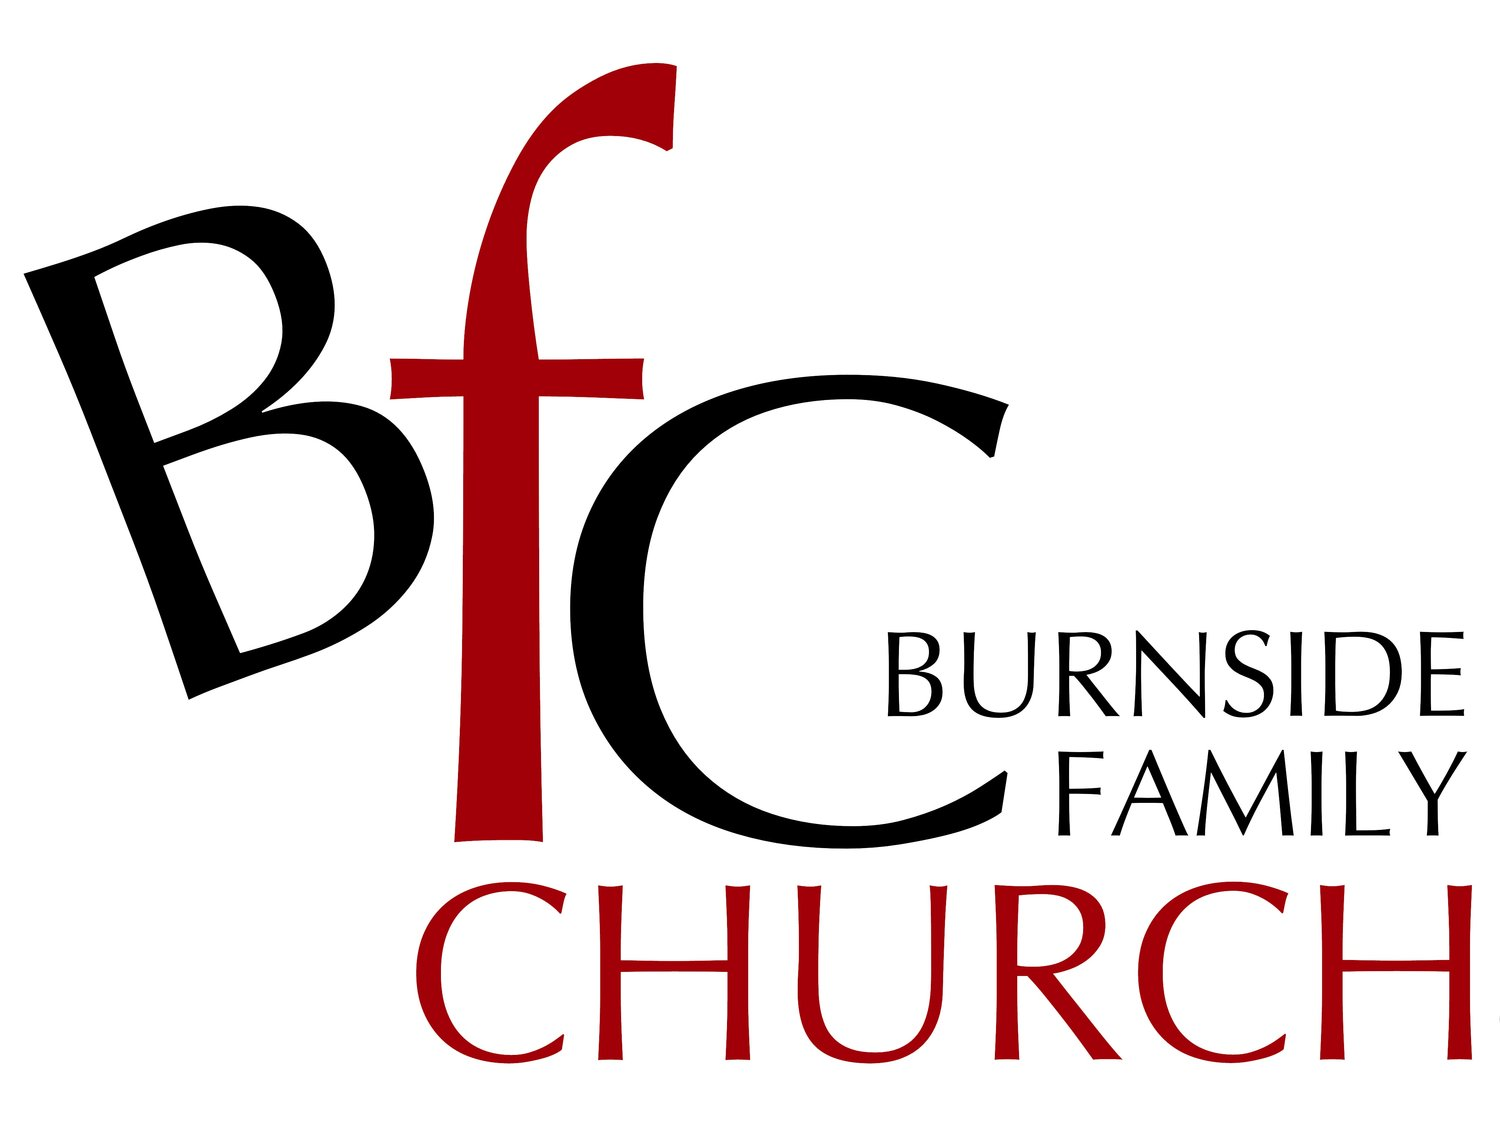 Burnside Family Church